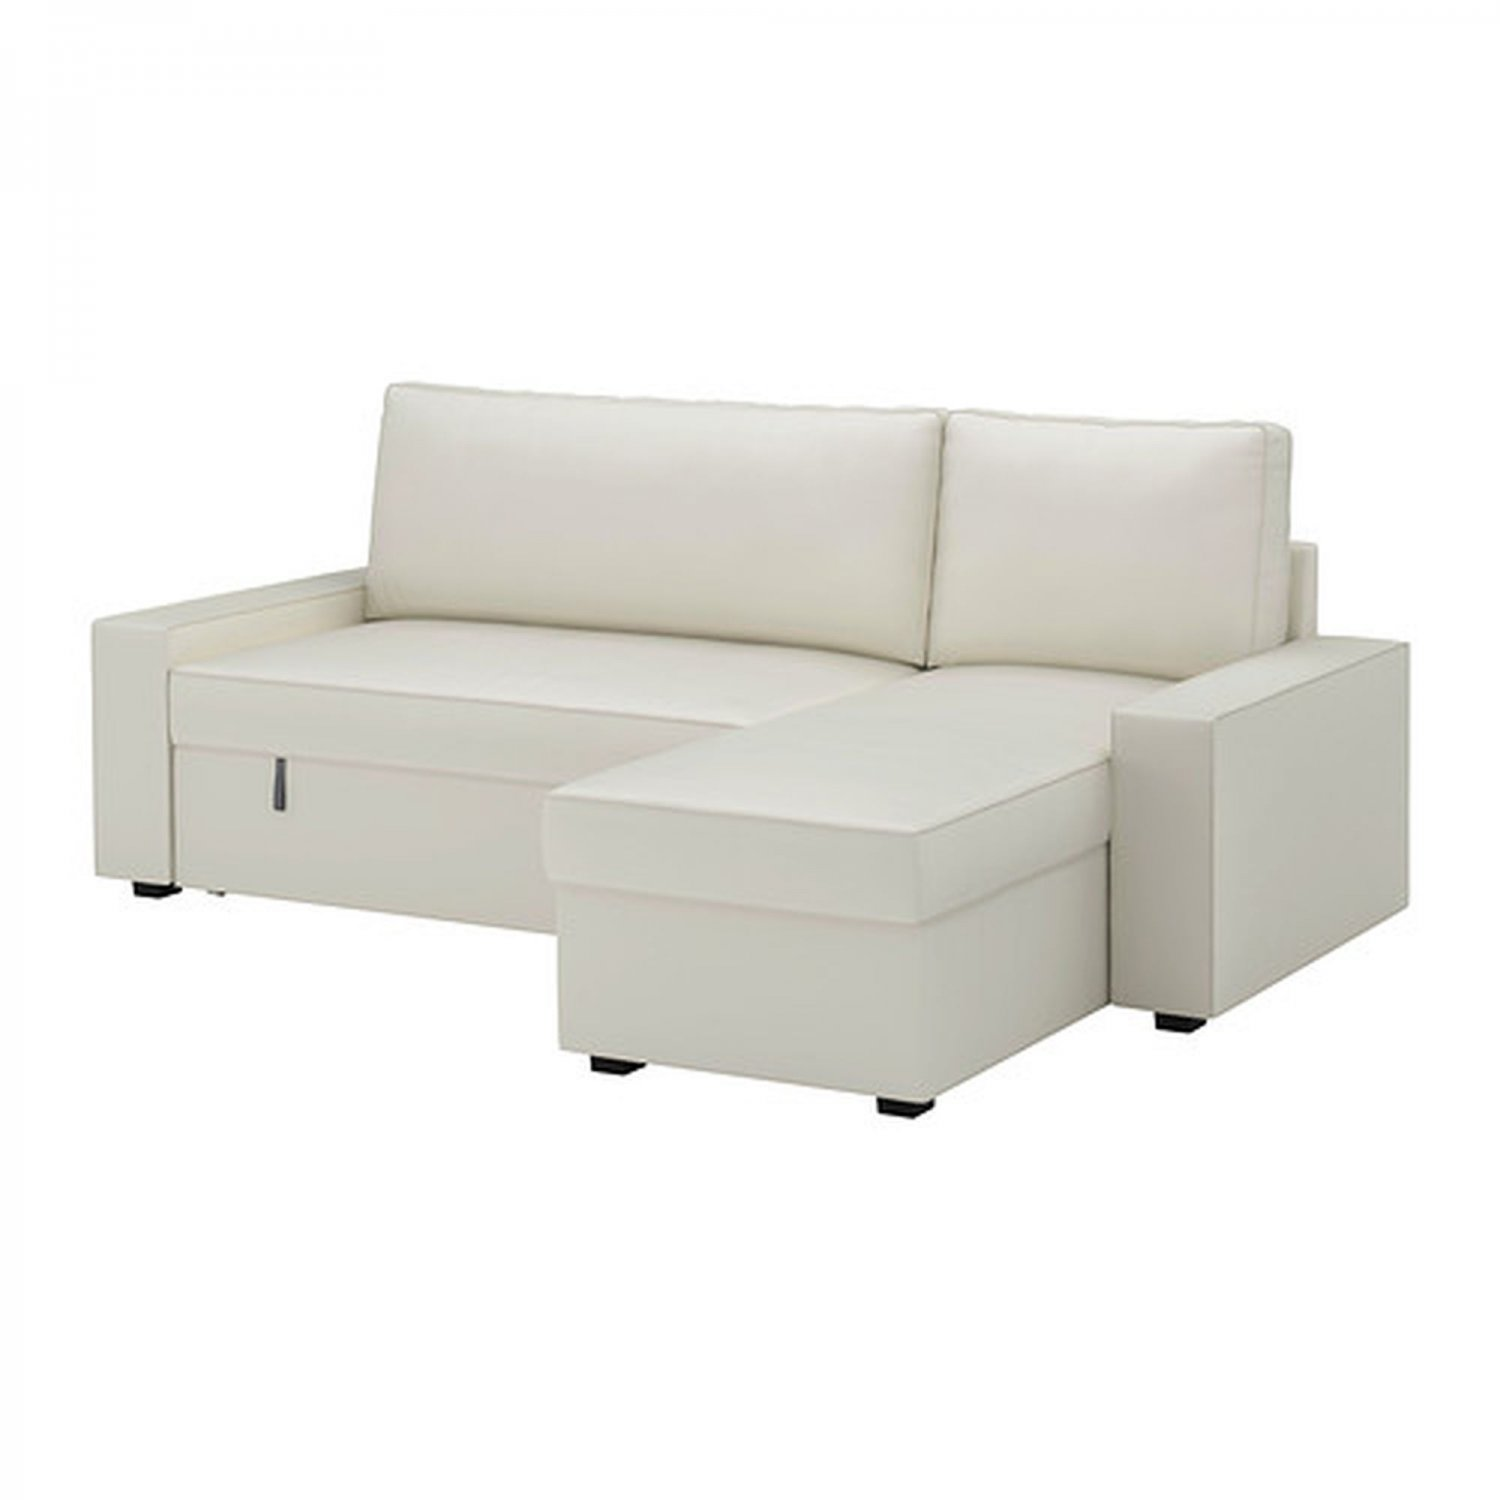 Ikea vilasund sofa bed with chaise slipcover sofabed cover for Chaise couch slipcover